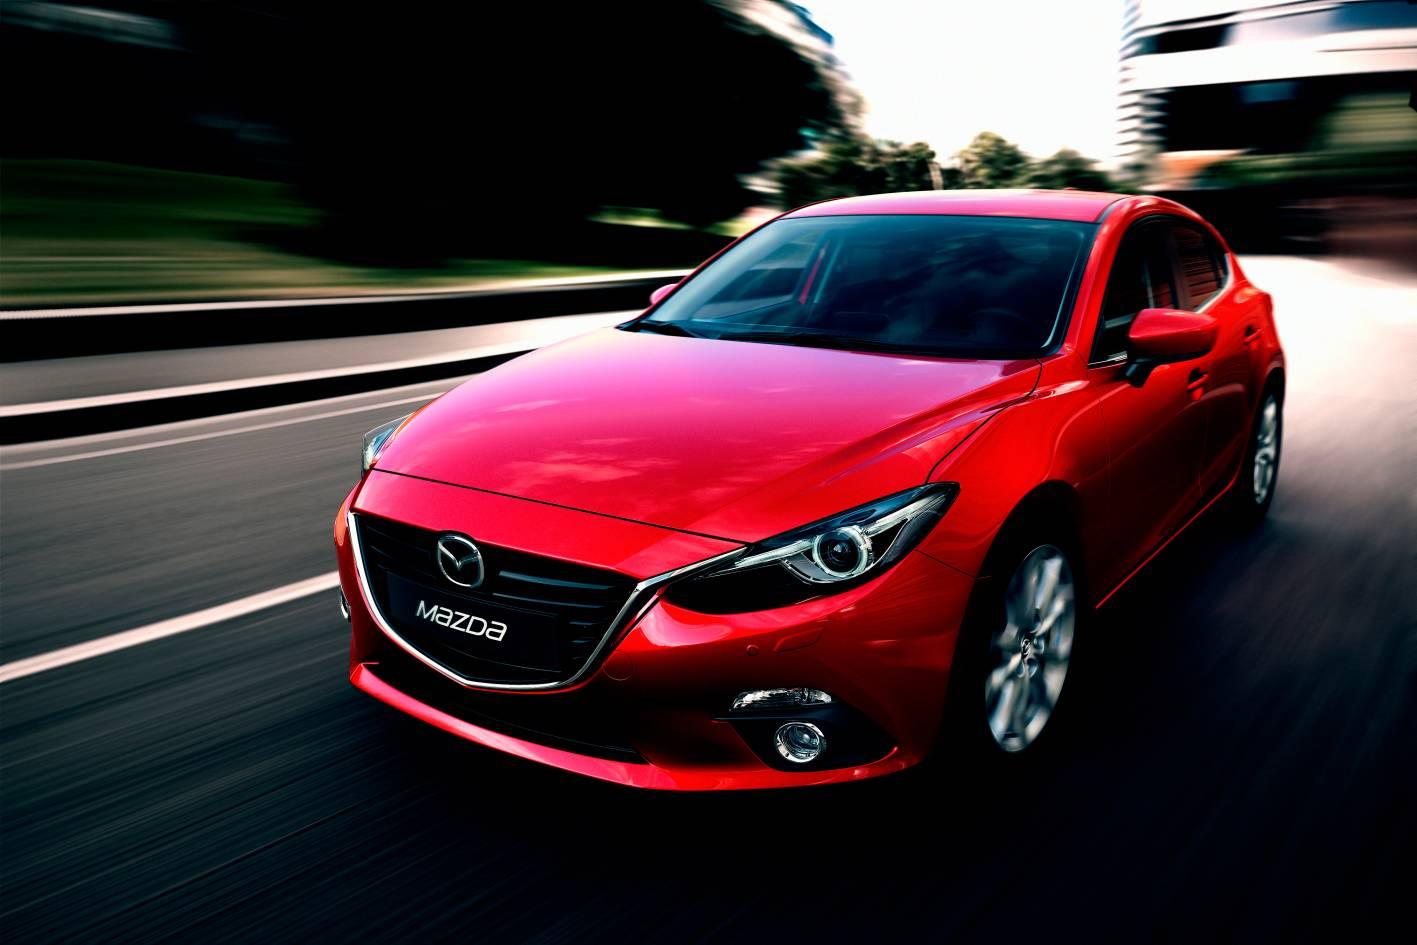 mazda cars news 2014 mazda3 breaks cover. Black Bedroom Furniture Sets. Home Design Ideas